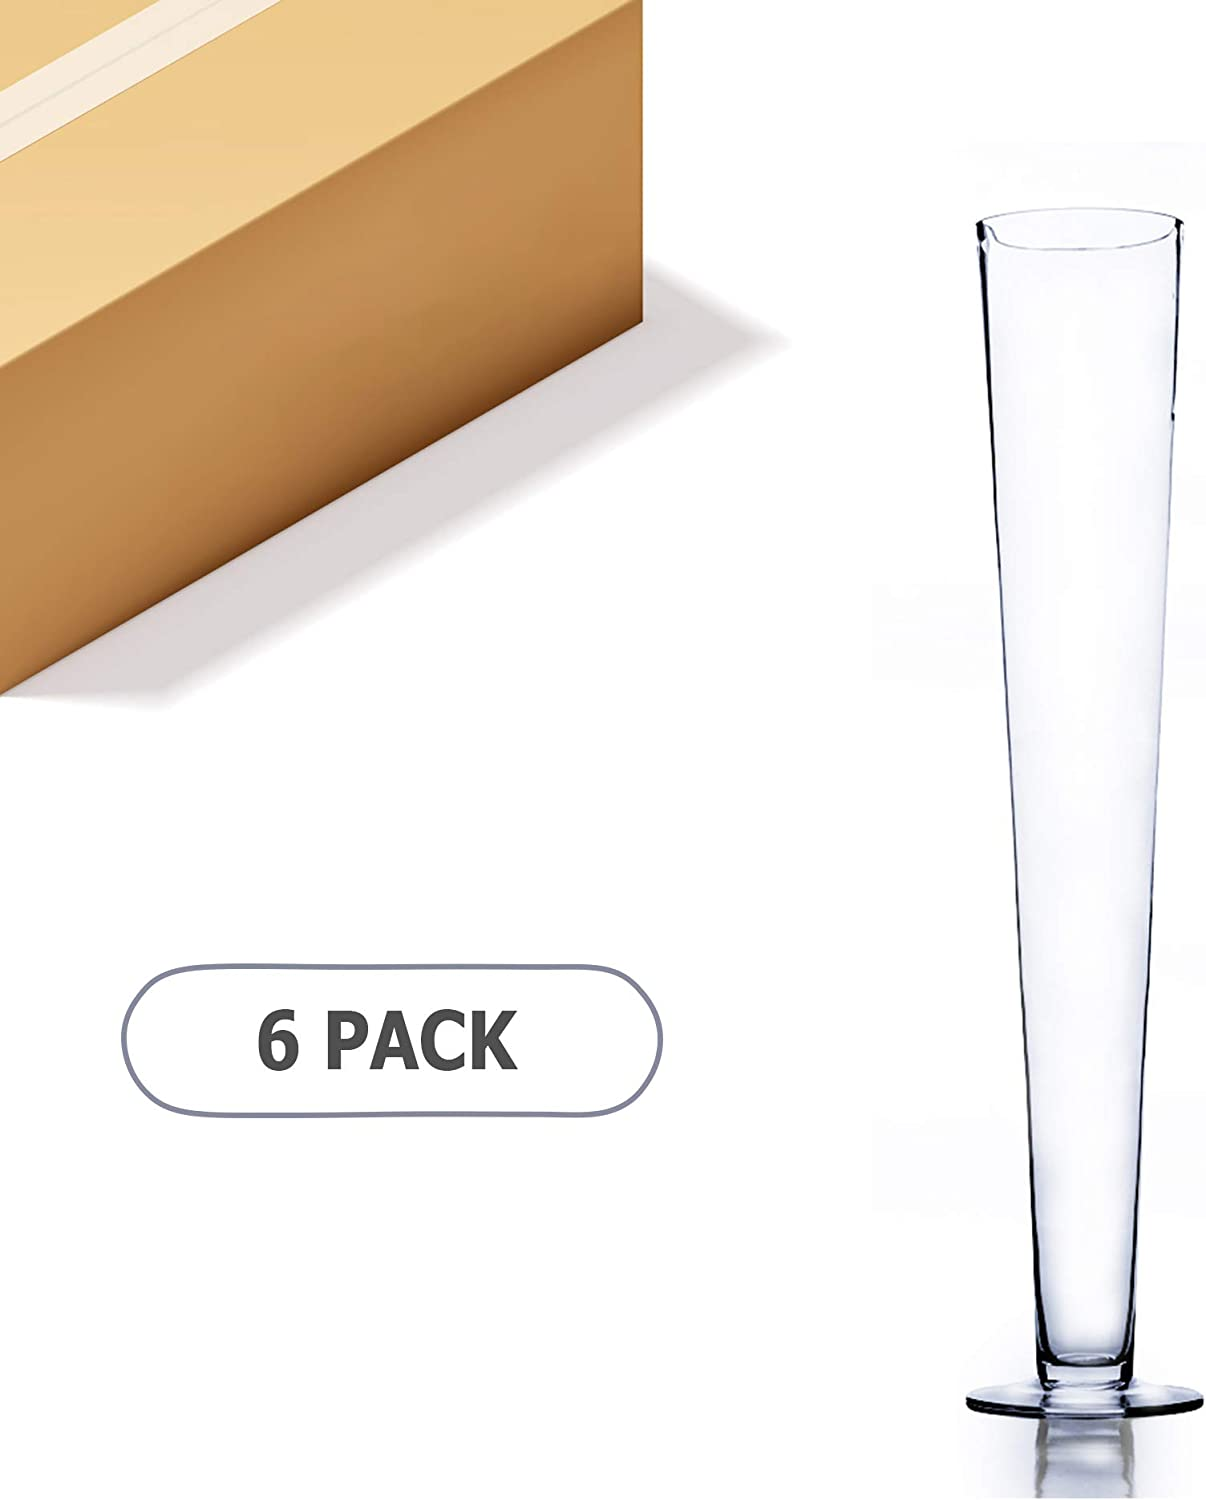 Amazon Com Wgv Trumpet Glass Vase Bulk Open 4 Height 23 5 Clear Elegant Unique Tall Pilsner Floral Planter Container Centerpiece For Wedding Party Event Office Home Decor 6 Pieces Home Kitchen